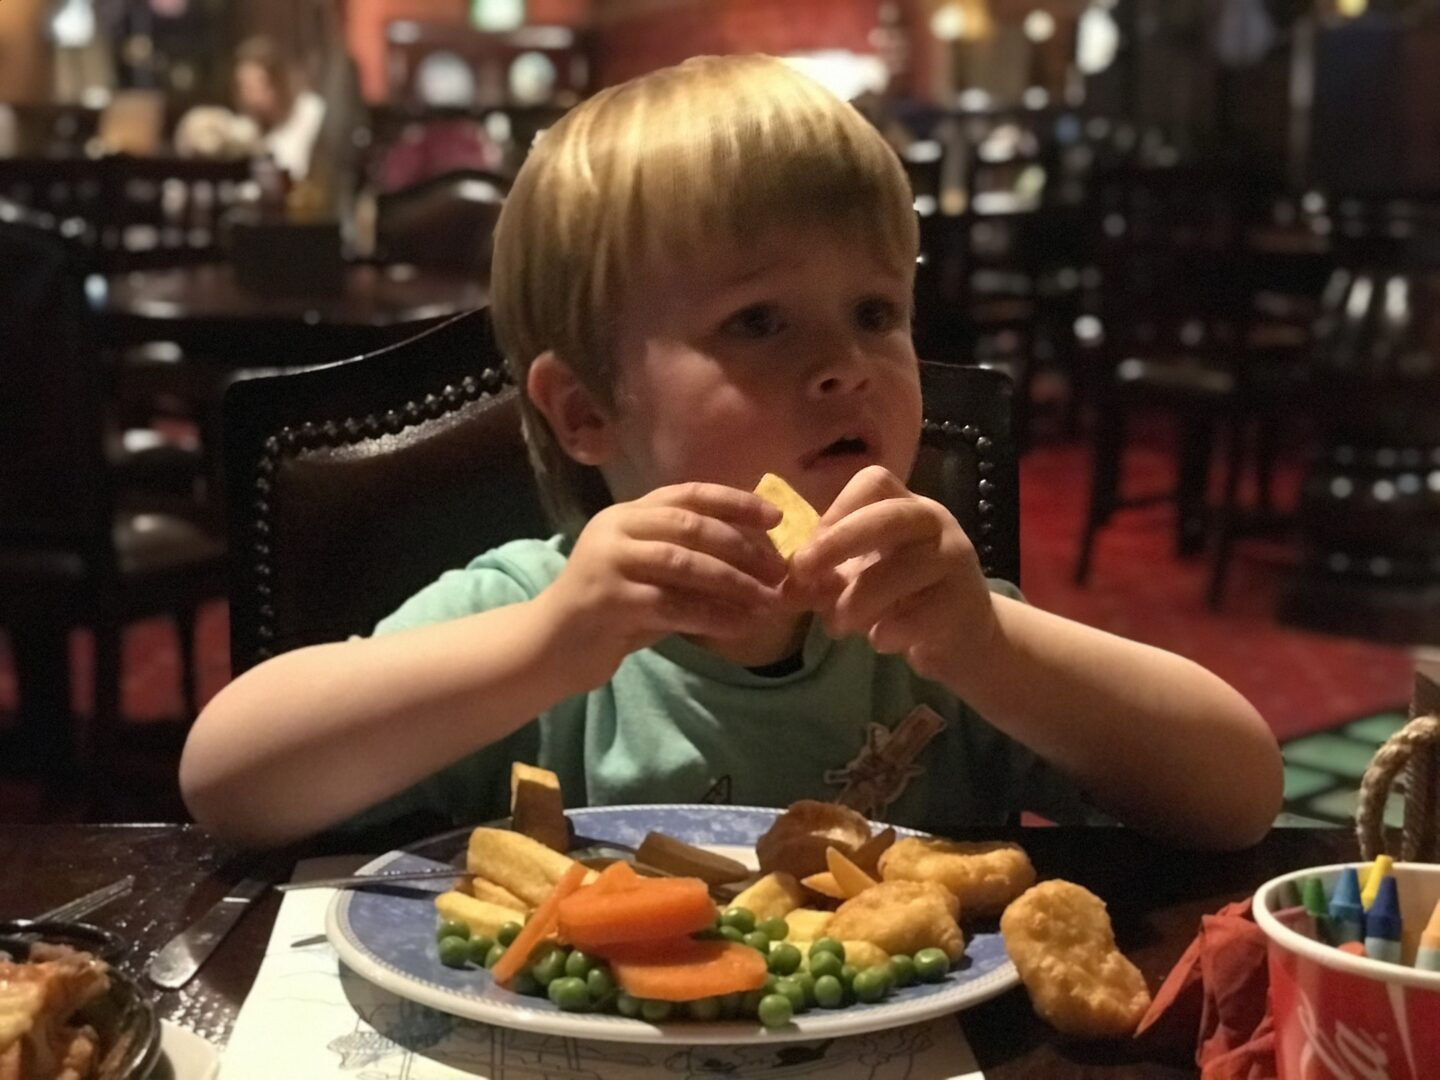 Dexter eating chicken nuggets, chips and veg in the buccaneer, blackpool